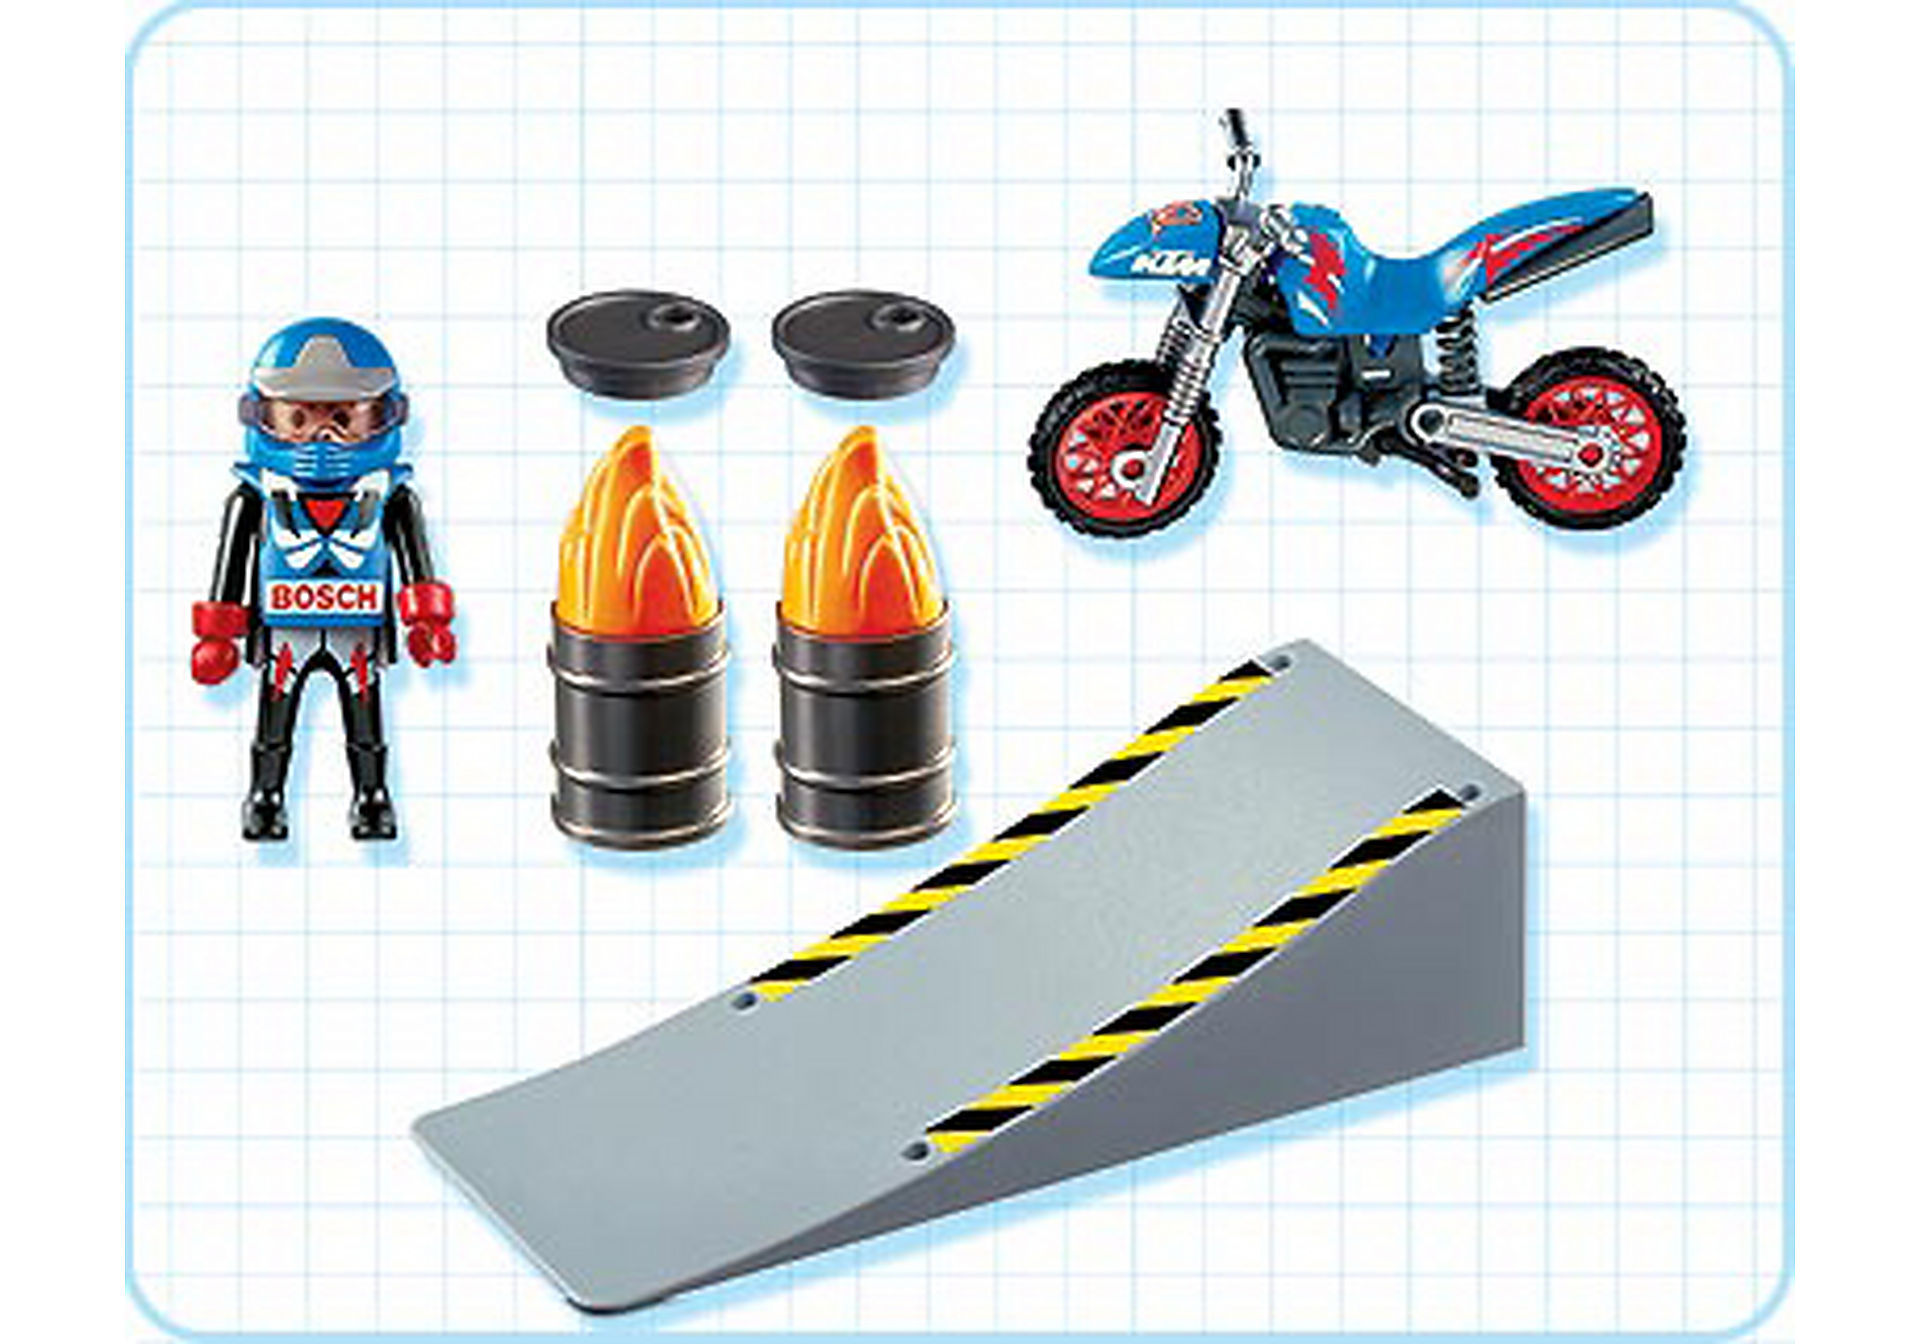 4416-A Motocross-Fahrer mit Rampe zoom image2